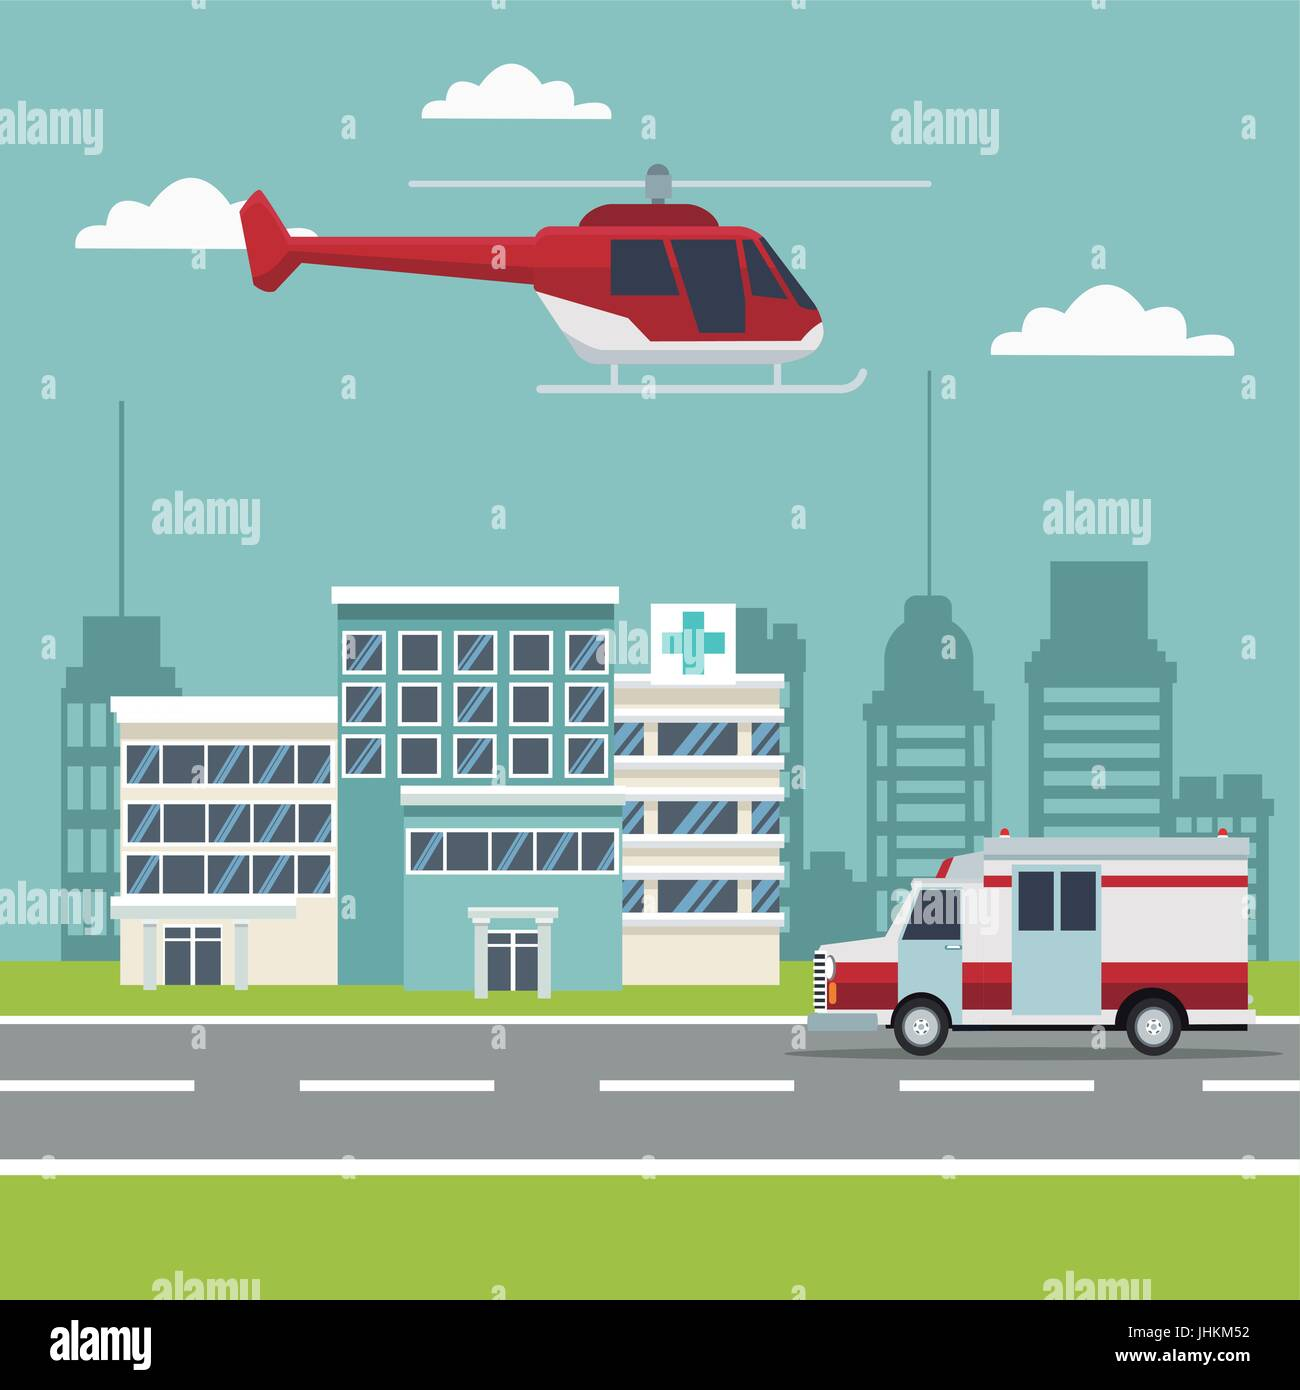 city landscape scene building hospitals with ambulance and helicopter flying overhead - Stock Image